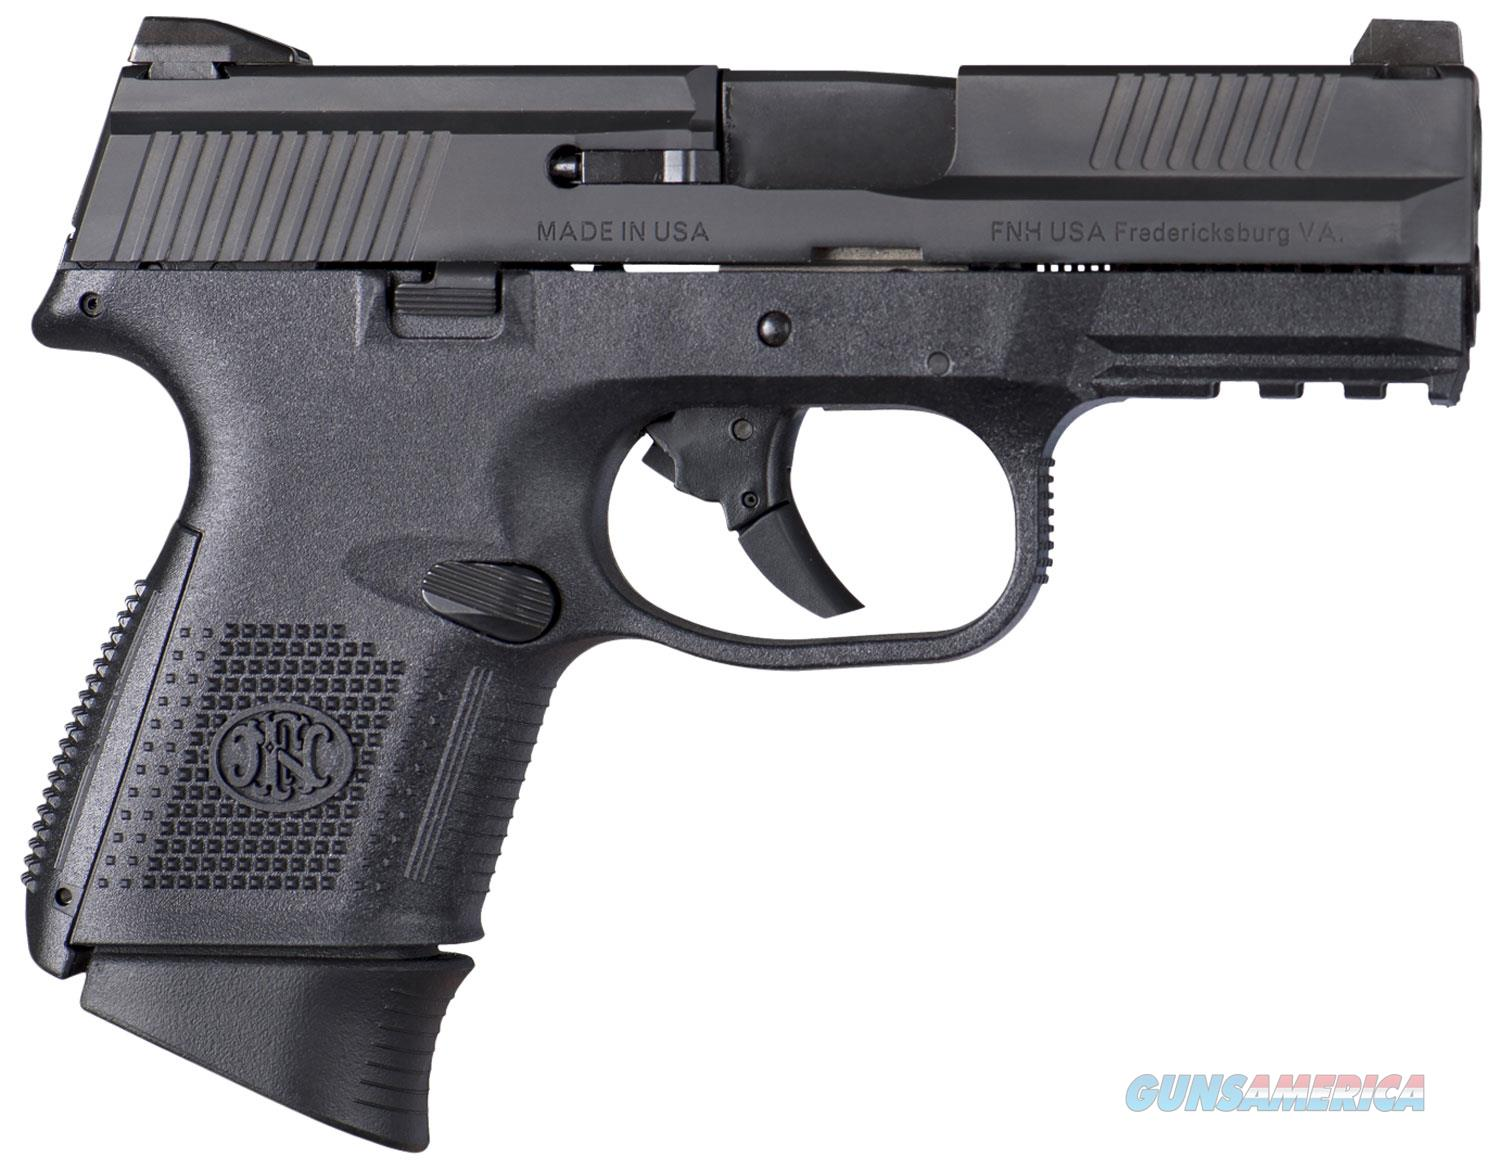 FNS-9c Compact 9mm BK 12+1 and 17+1 Magazines   Guns > Pistols > FNH - Fabrique Nationale (FN) Pistols > FNS